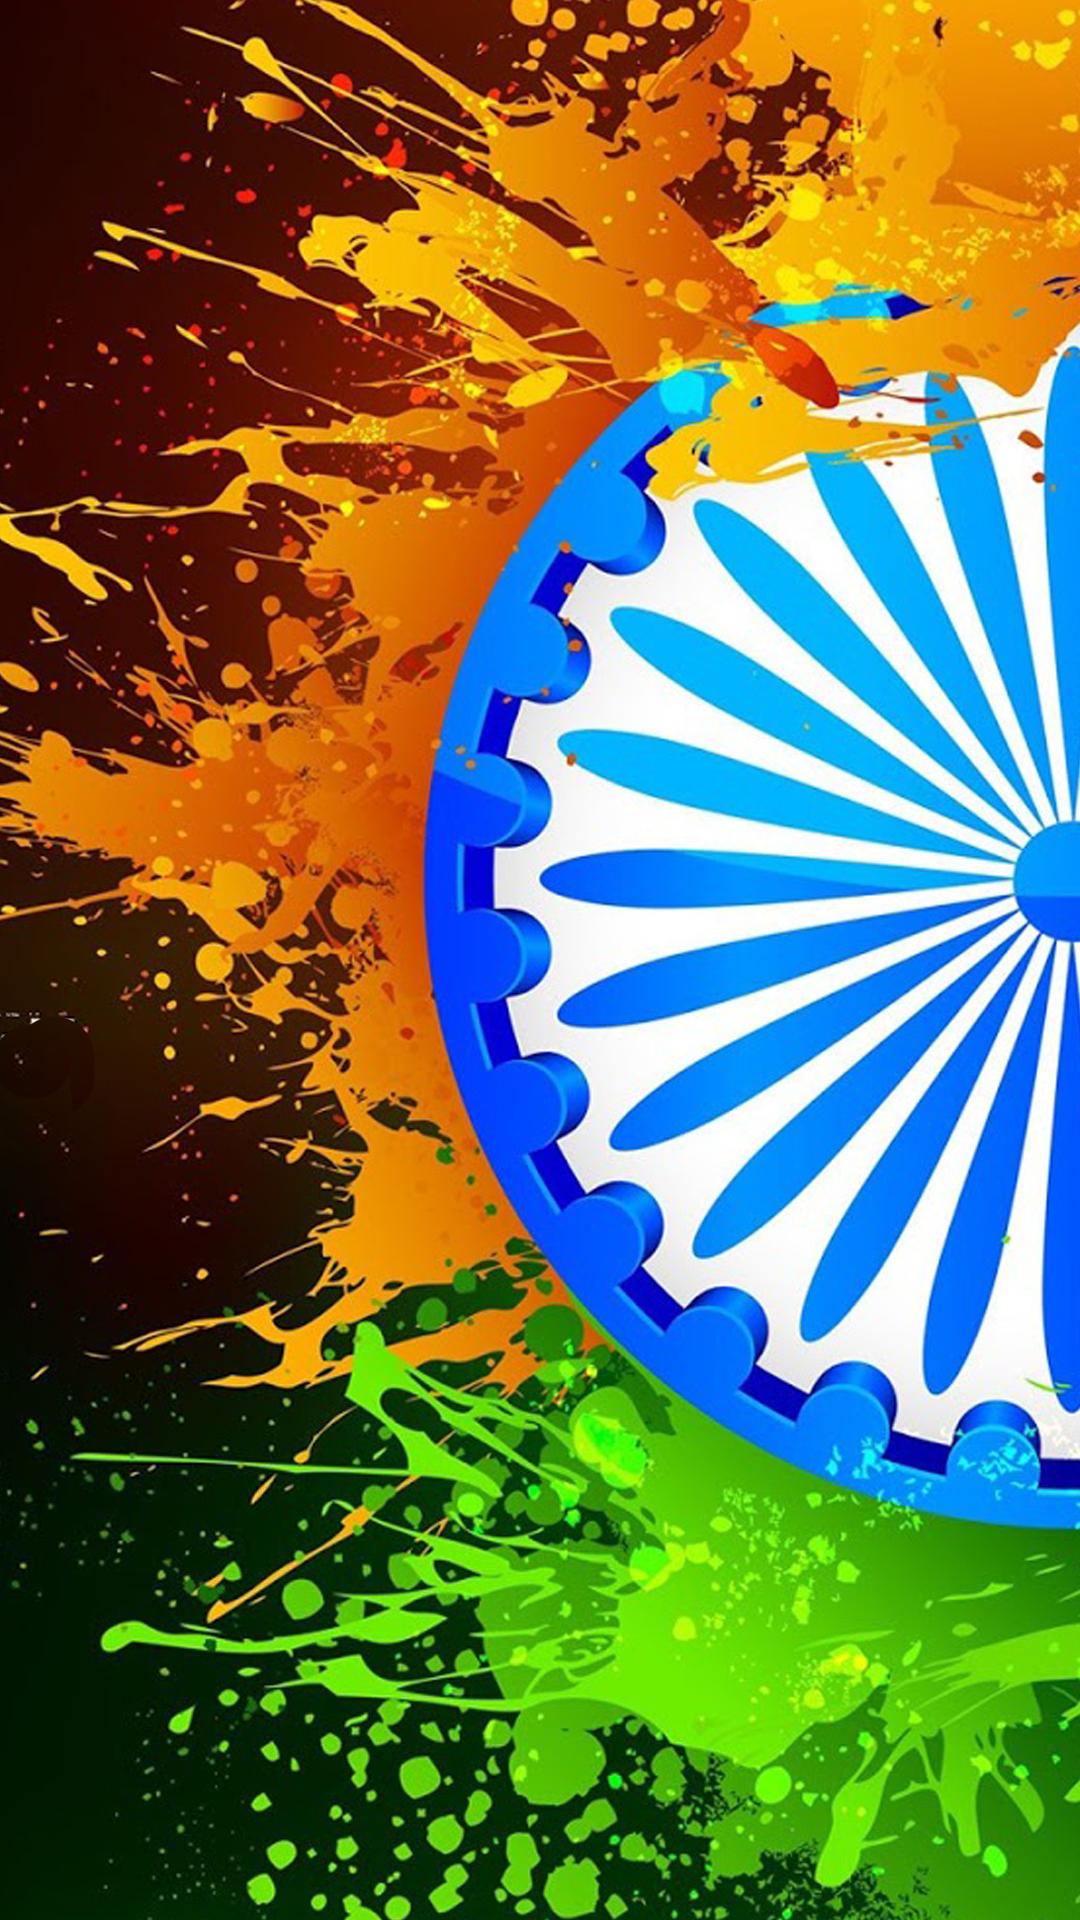 flag national republic india whatsapp indian hd wallpapers flags background colors mobile army allpicts downloads tiranga backgrounds mahatma gandhi countries